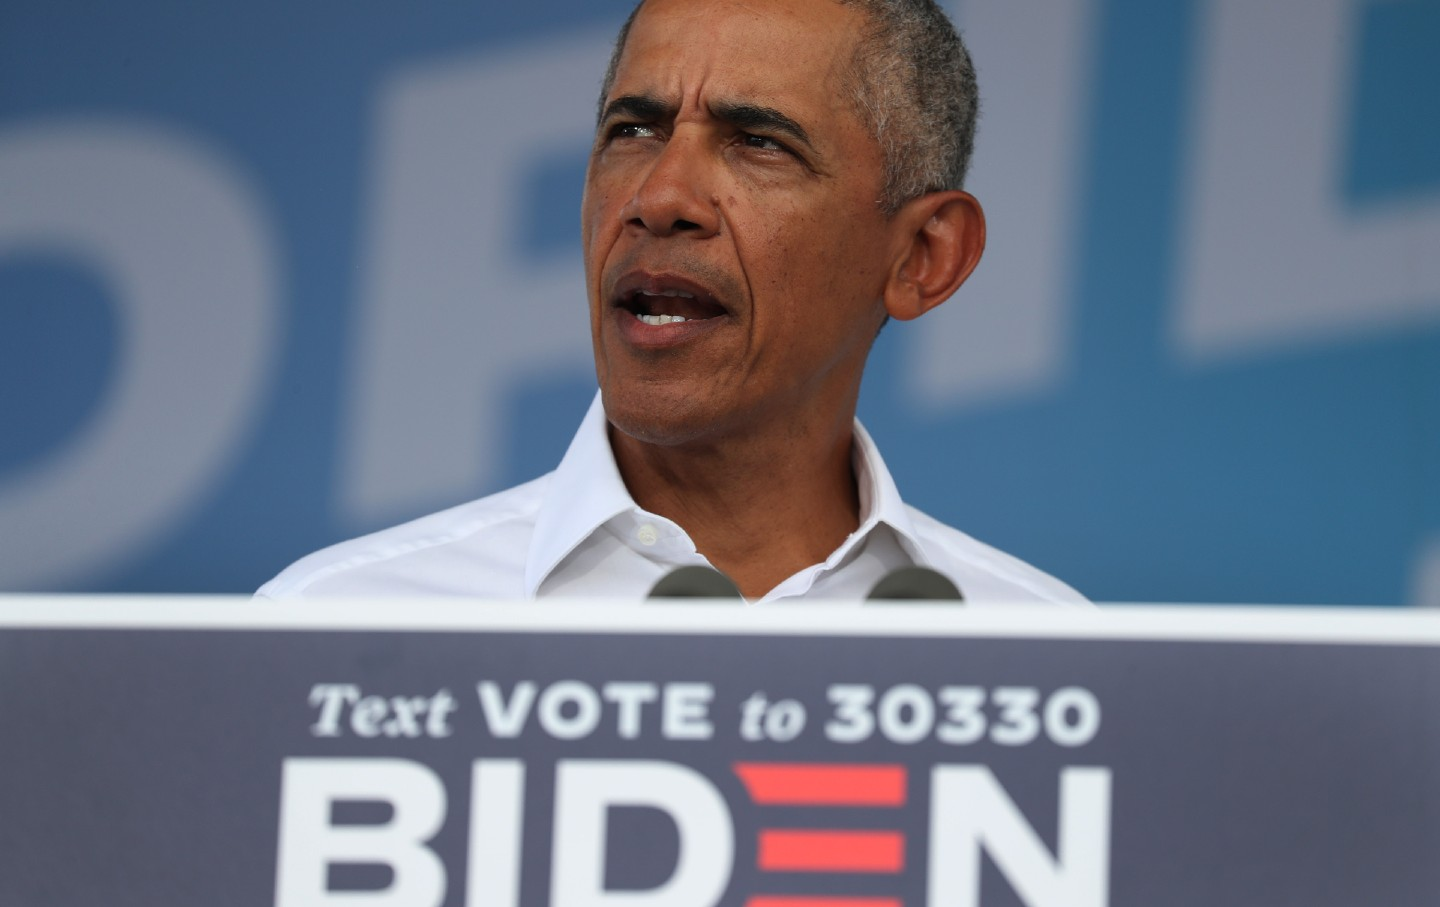 Barack Obama speaks to a crowd in front of a Biden 2020 sign